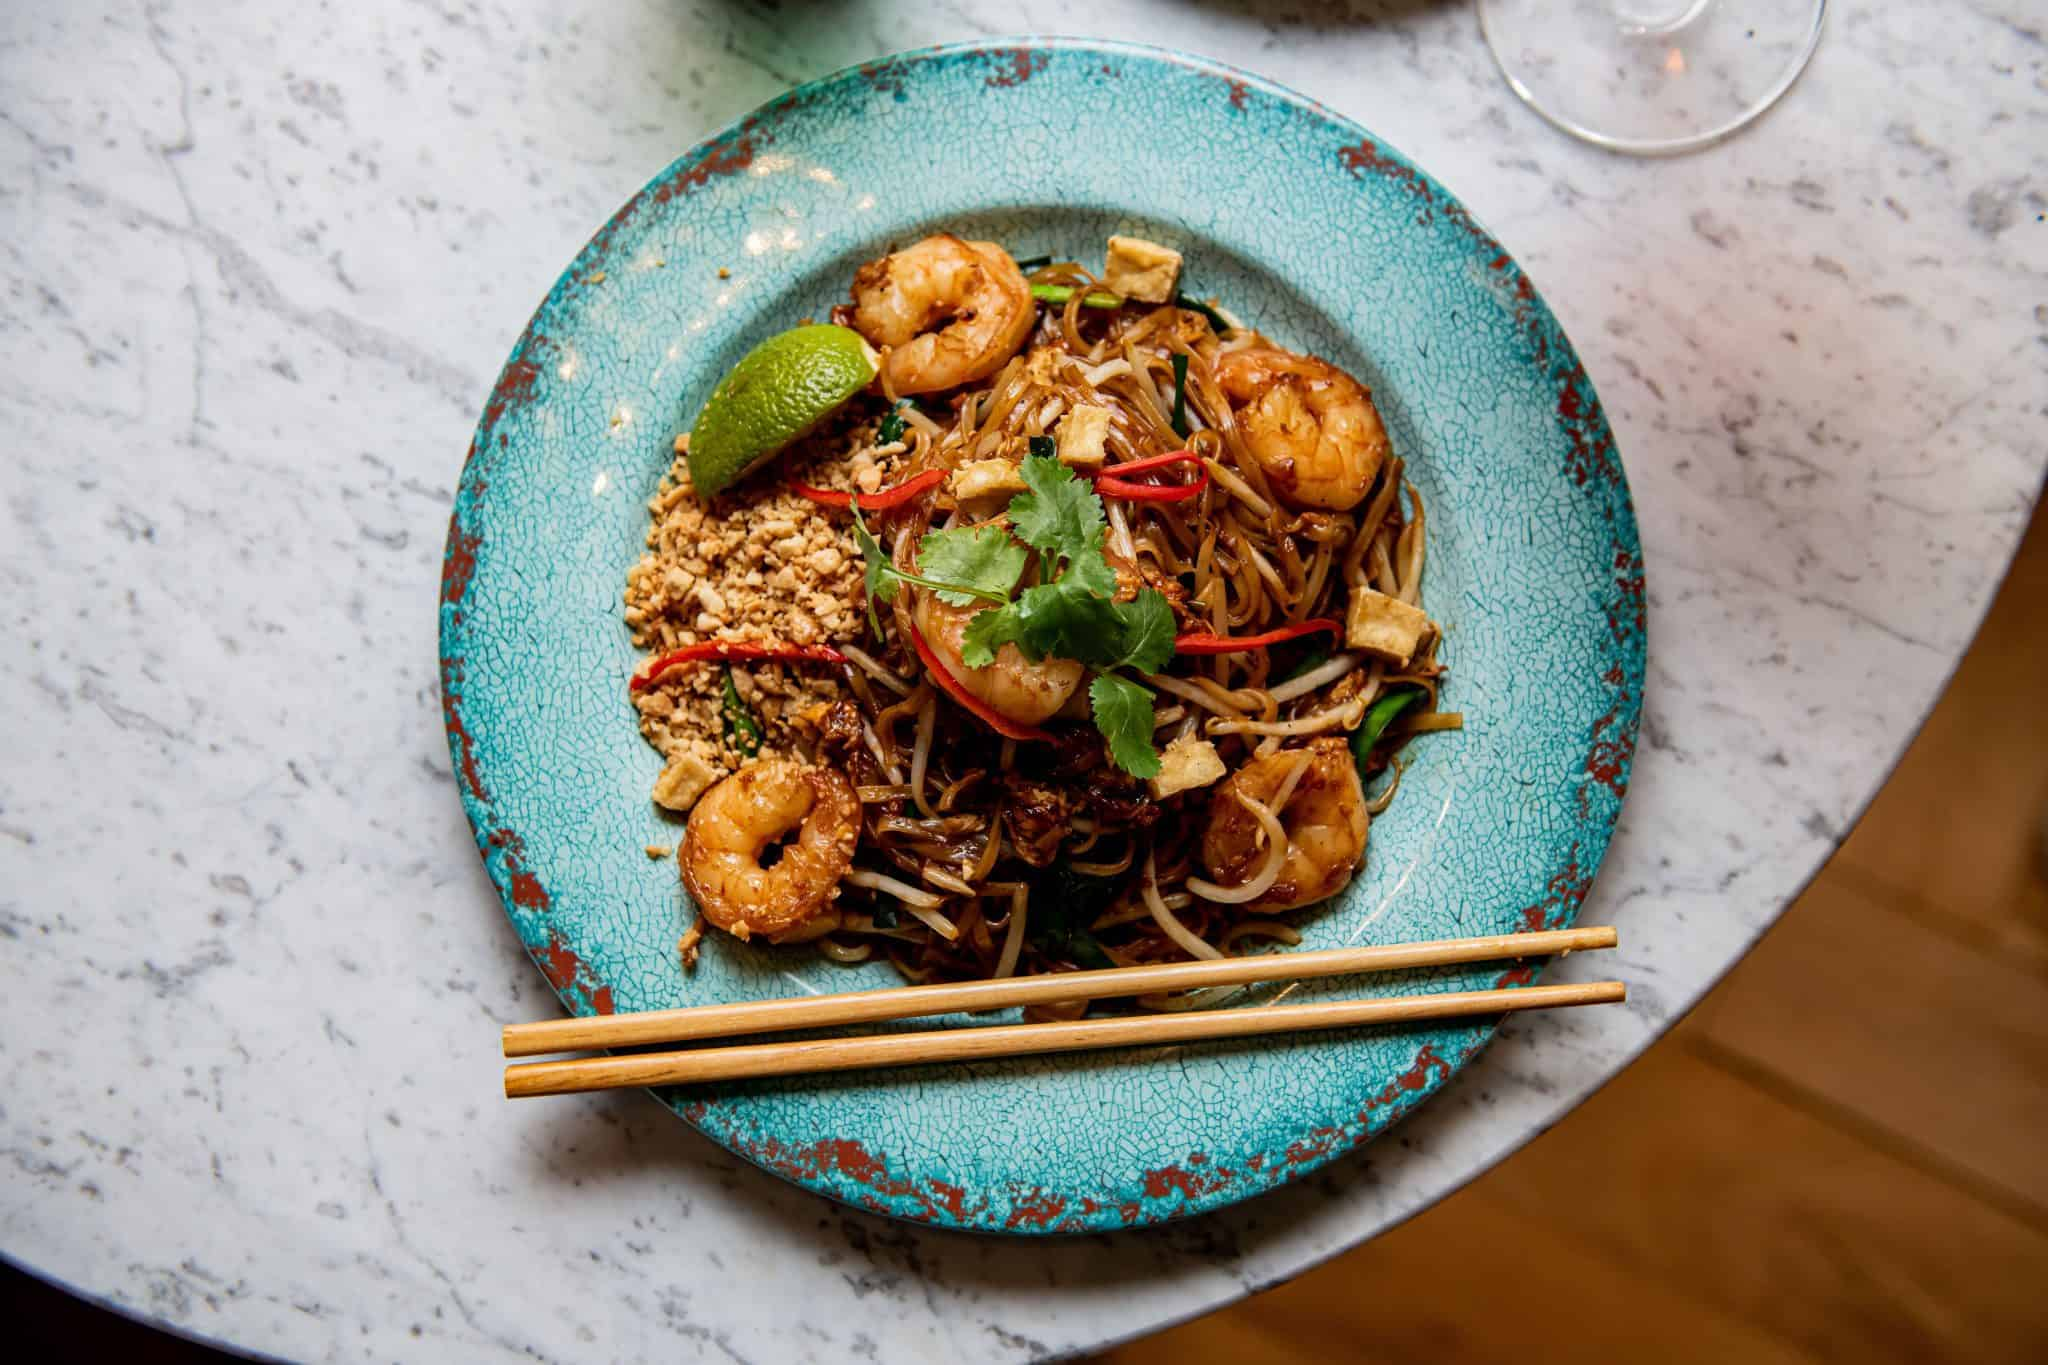 Rosa's Pad Thai London's best Restaurants reopening 17th May indoor dining